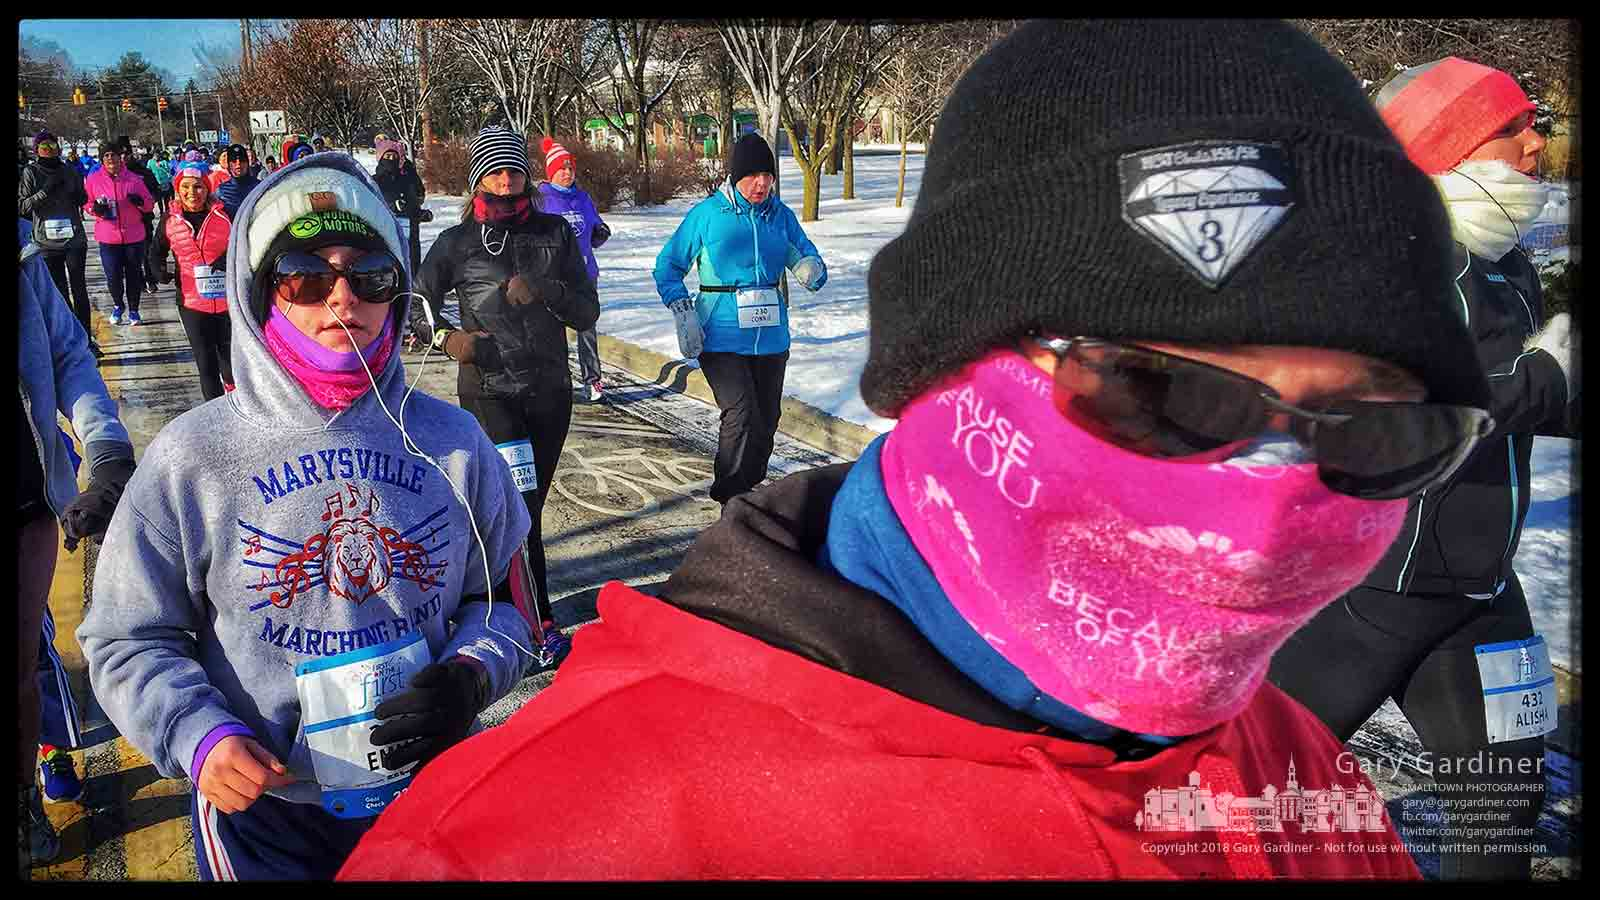 A runner navigates around the second turn in the First on the First 5K Run with runners beginning the race before noon when the temperature increased to eight degrees. My Final Photo for Jan. 1, 2018.